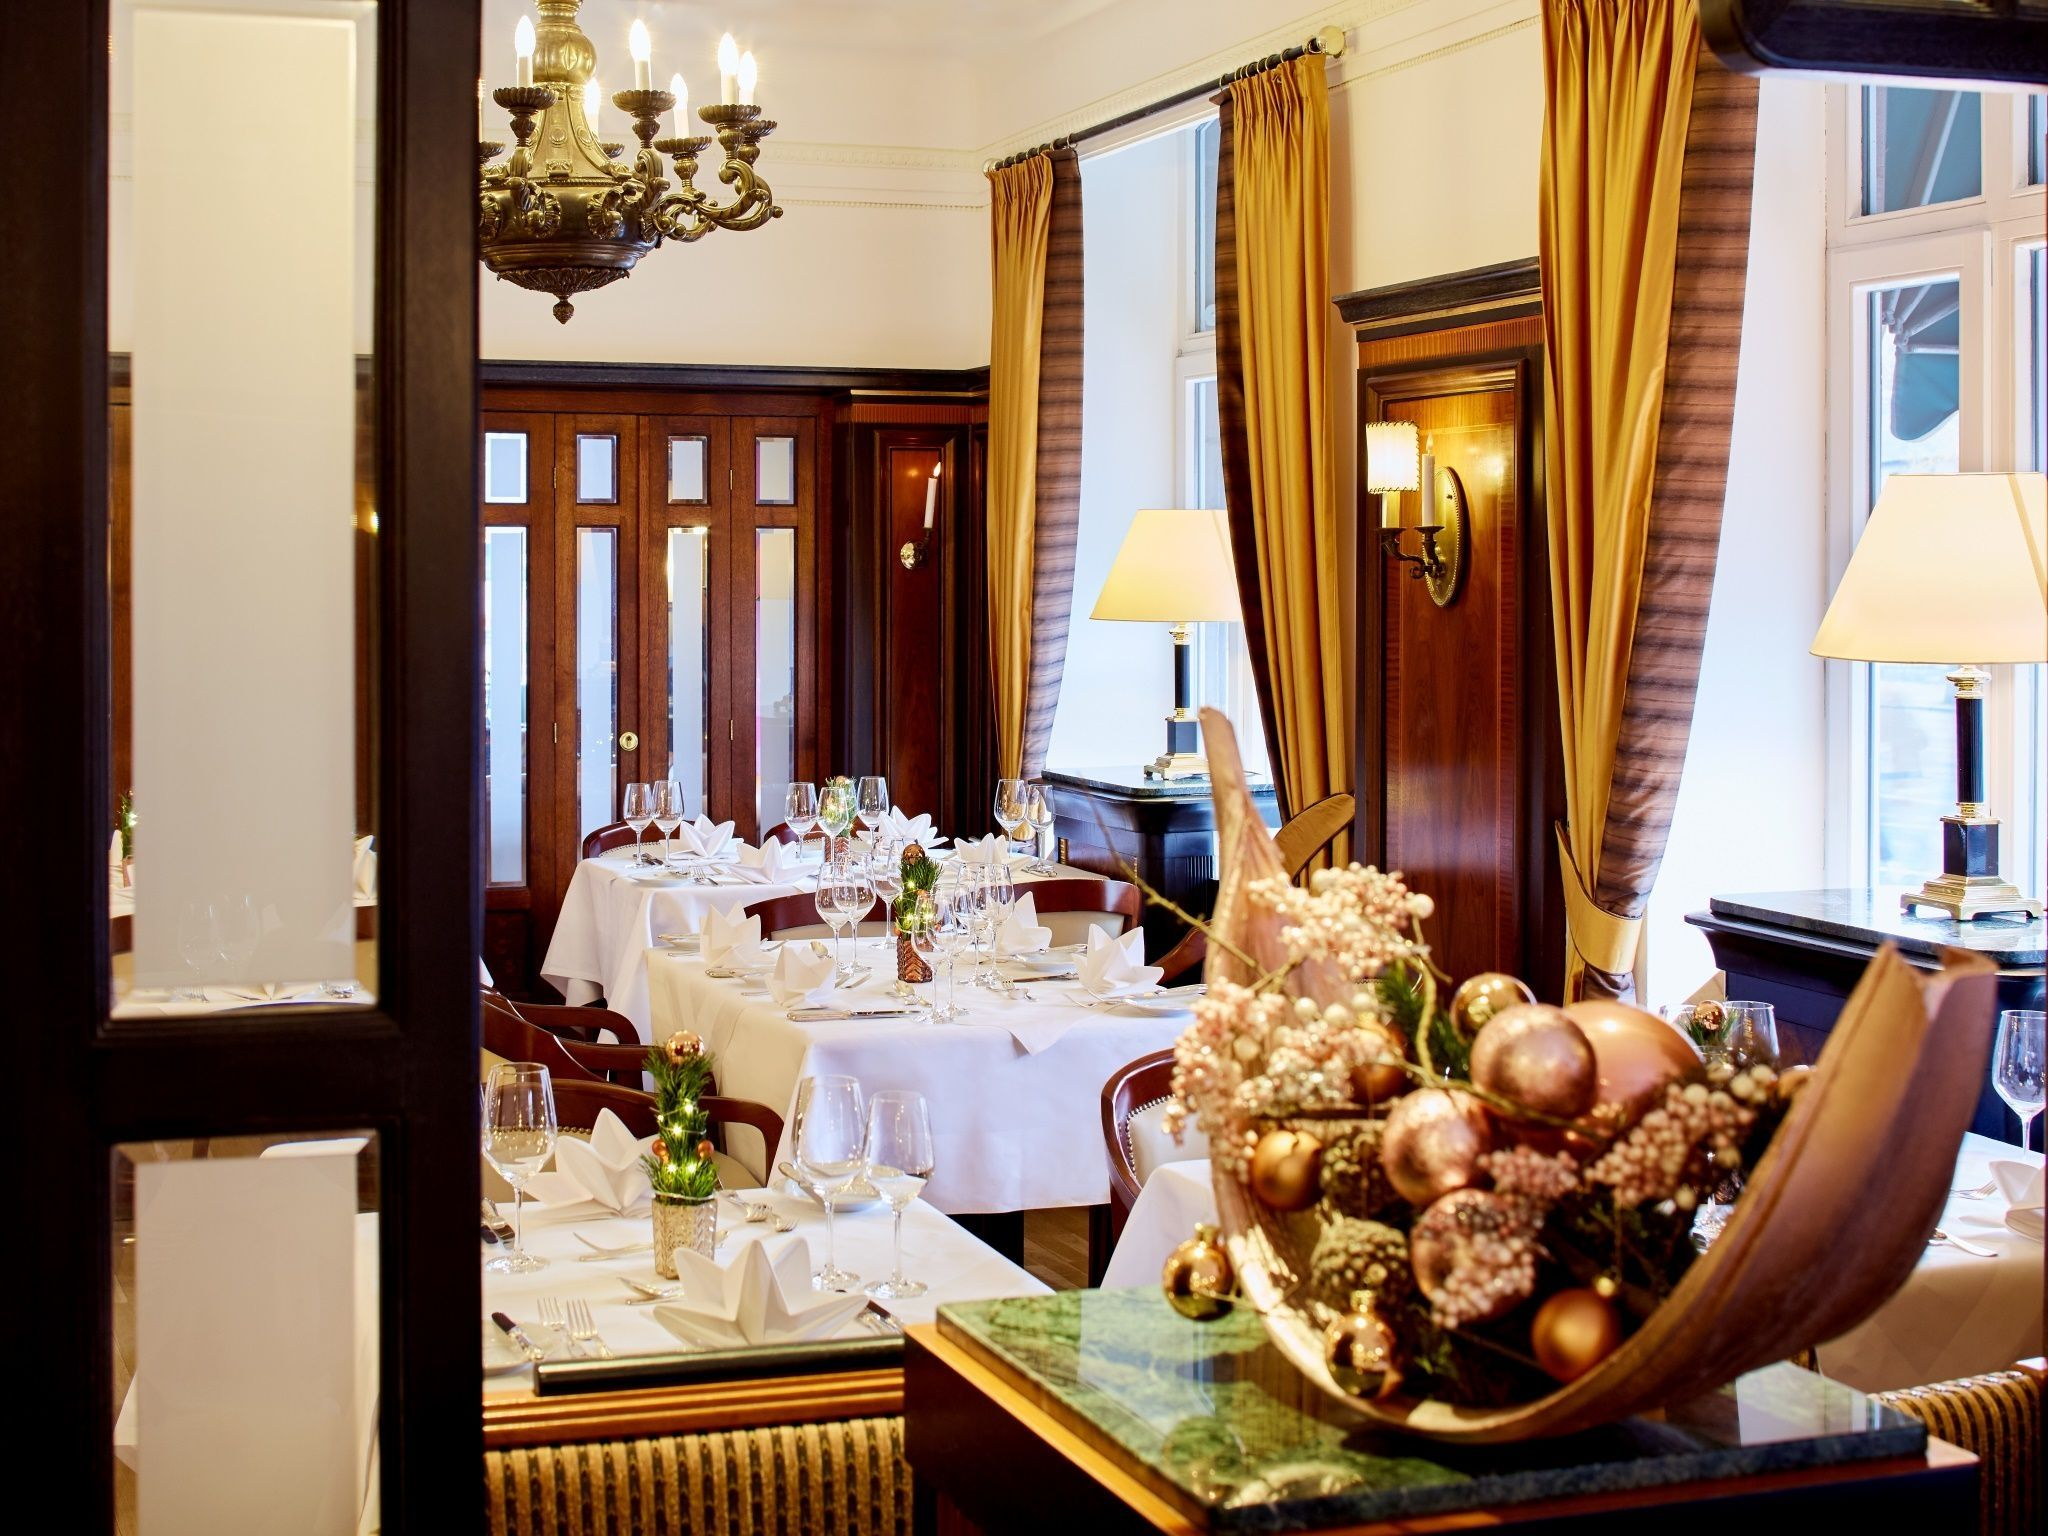 Festive Season in Nurembergs grand Hotel